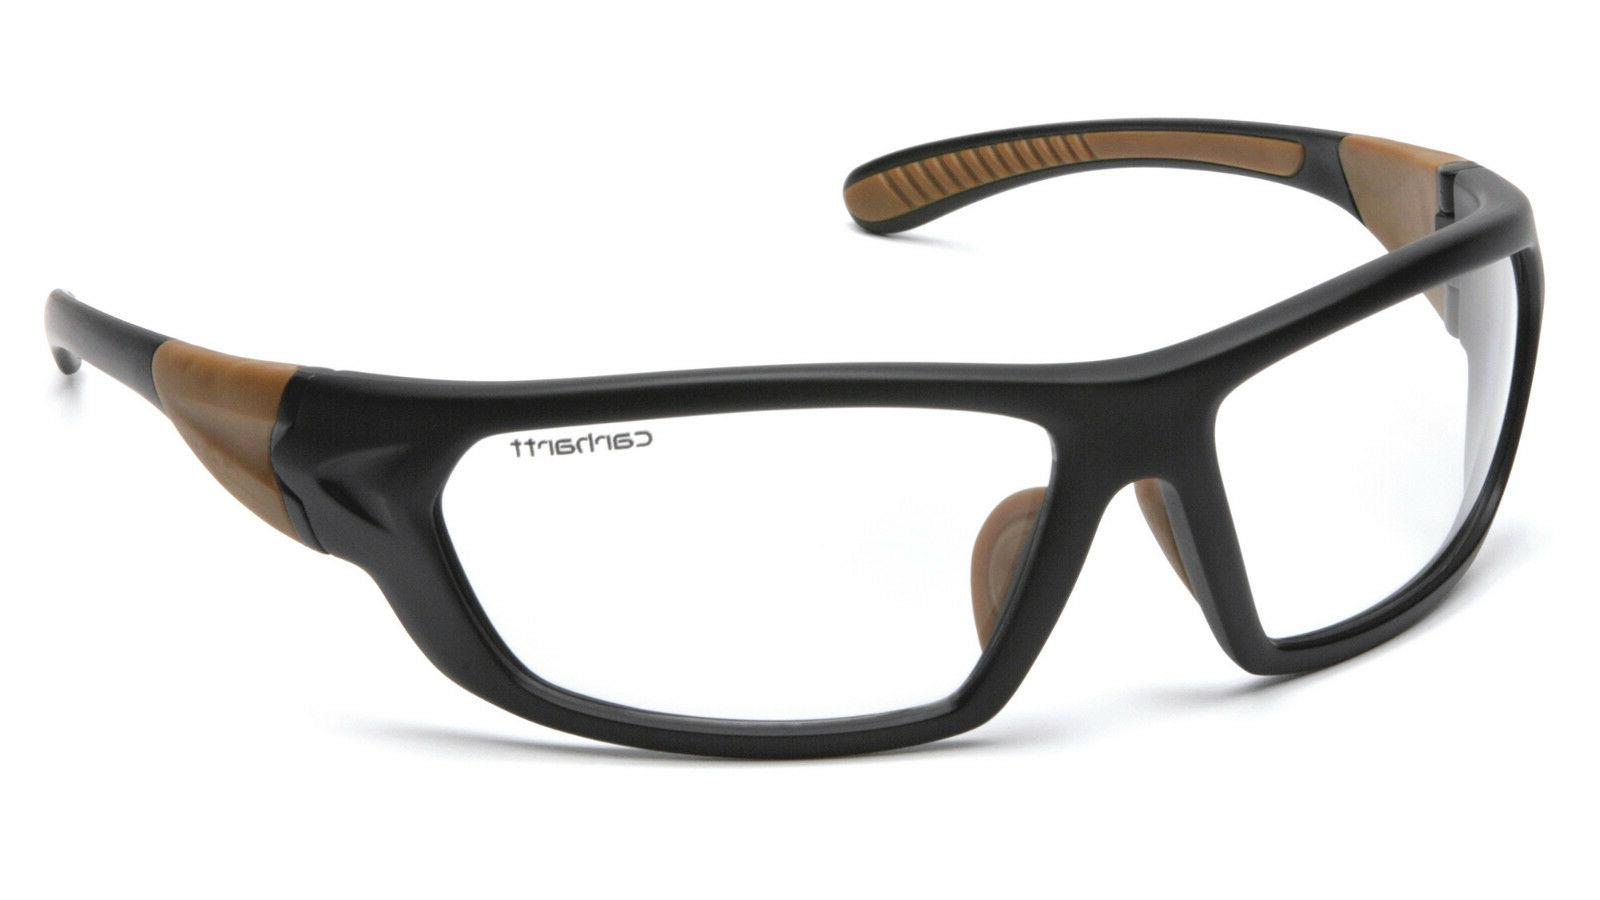 Carhartt Carbondale Safety Glasses with Black Frame and Clea